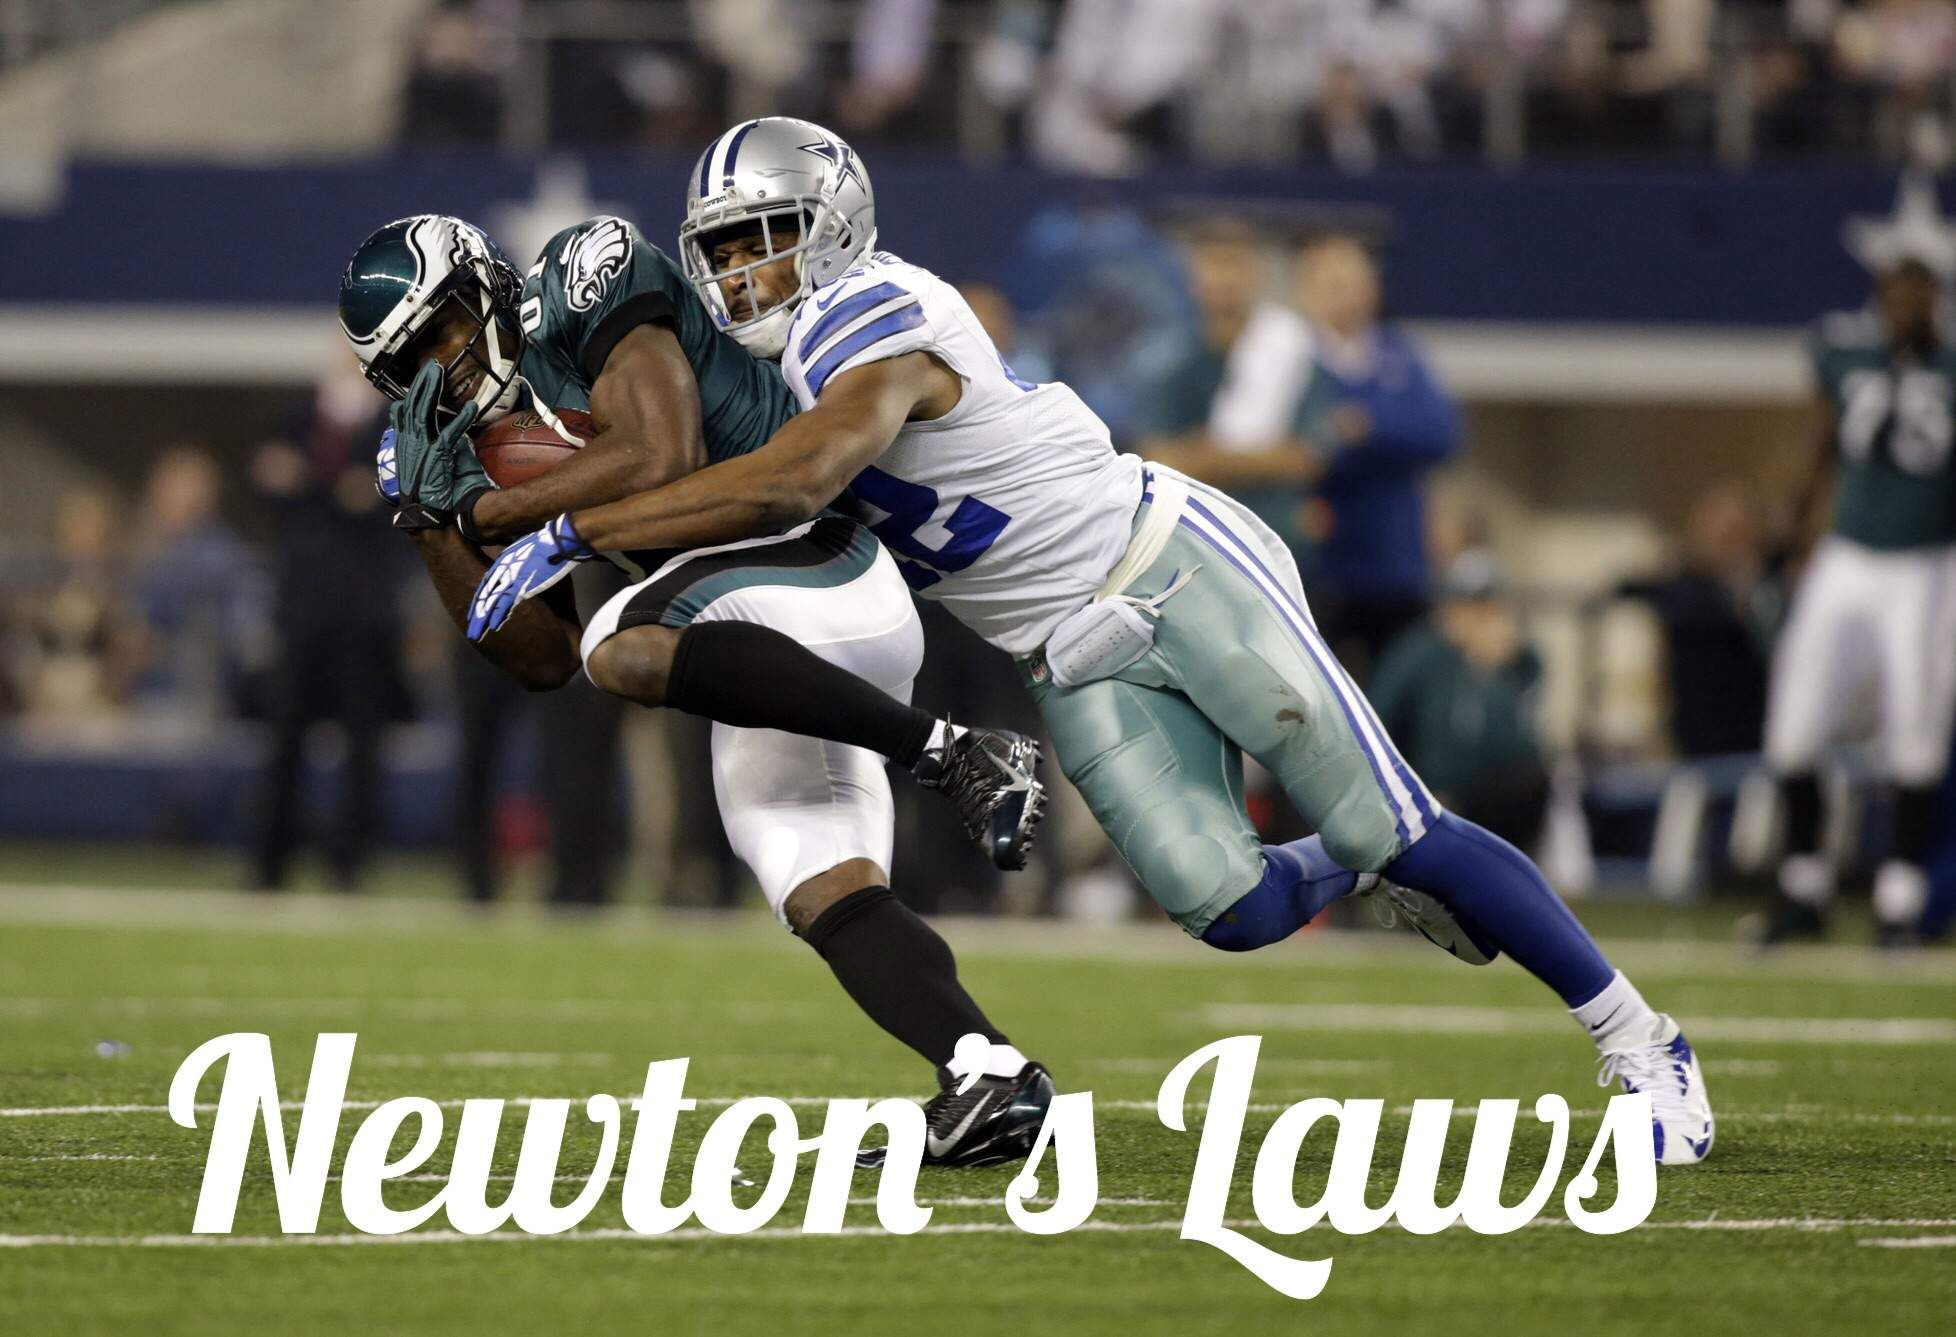 Newton S Third Law Of Motion Science Of Nfl Football Newtons Third Law Of Motion Nfl Football Basketball Science